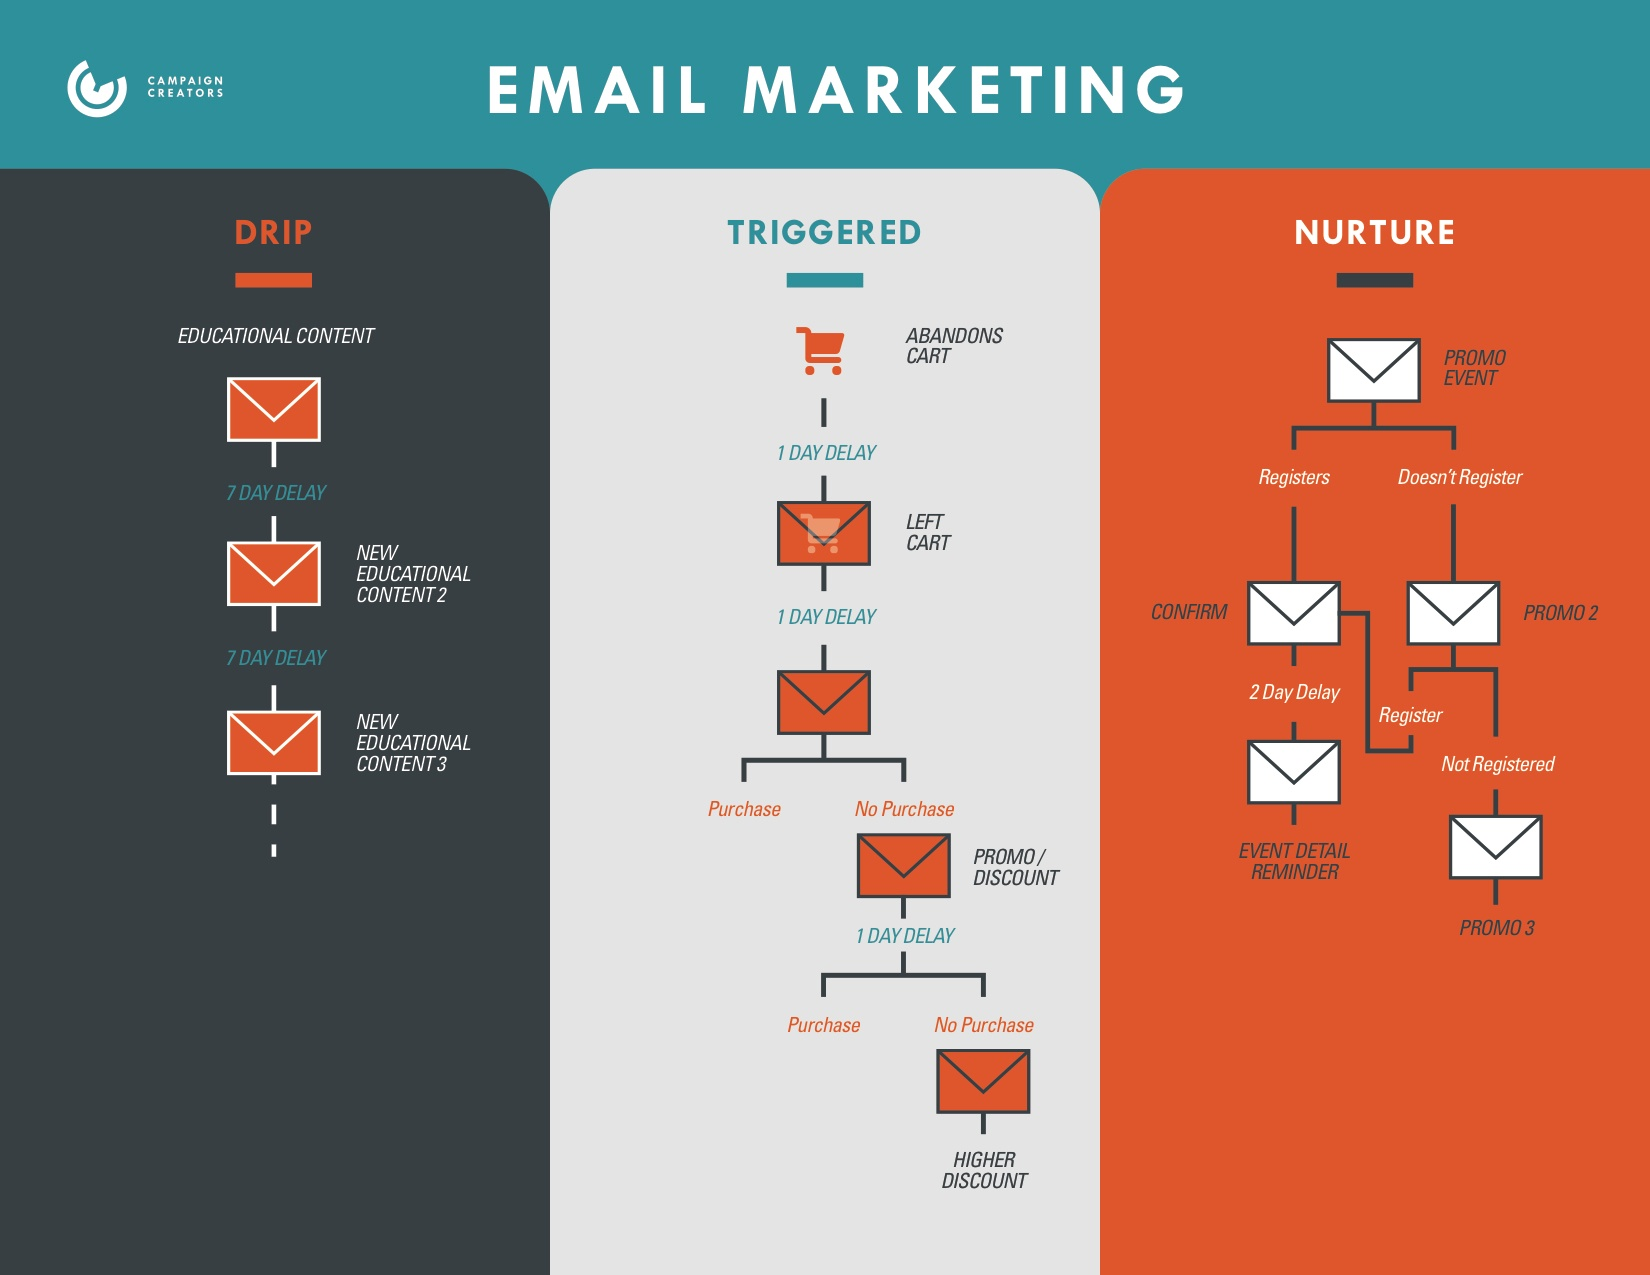 CampaignCreators-Email-Marketing-Diagram.jpg